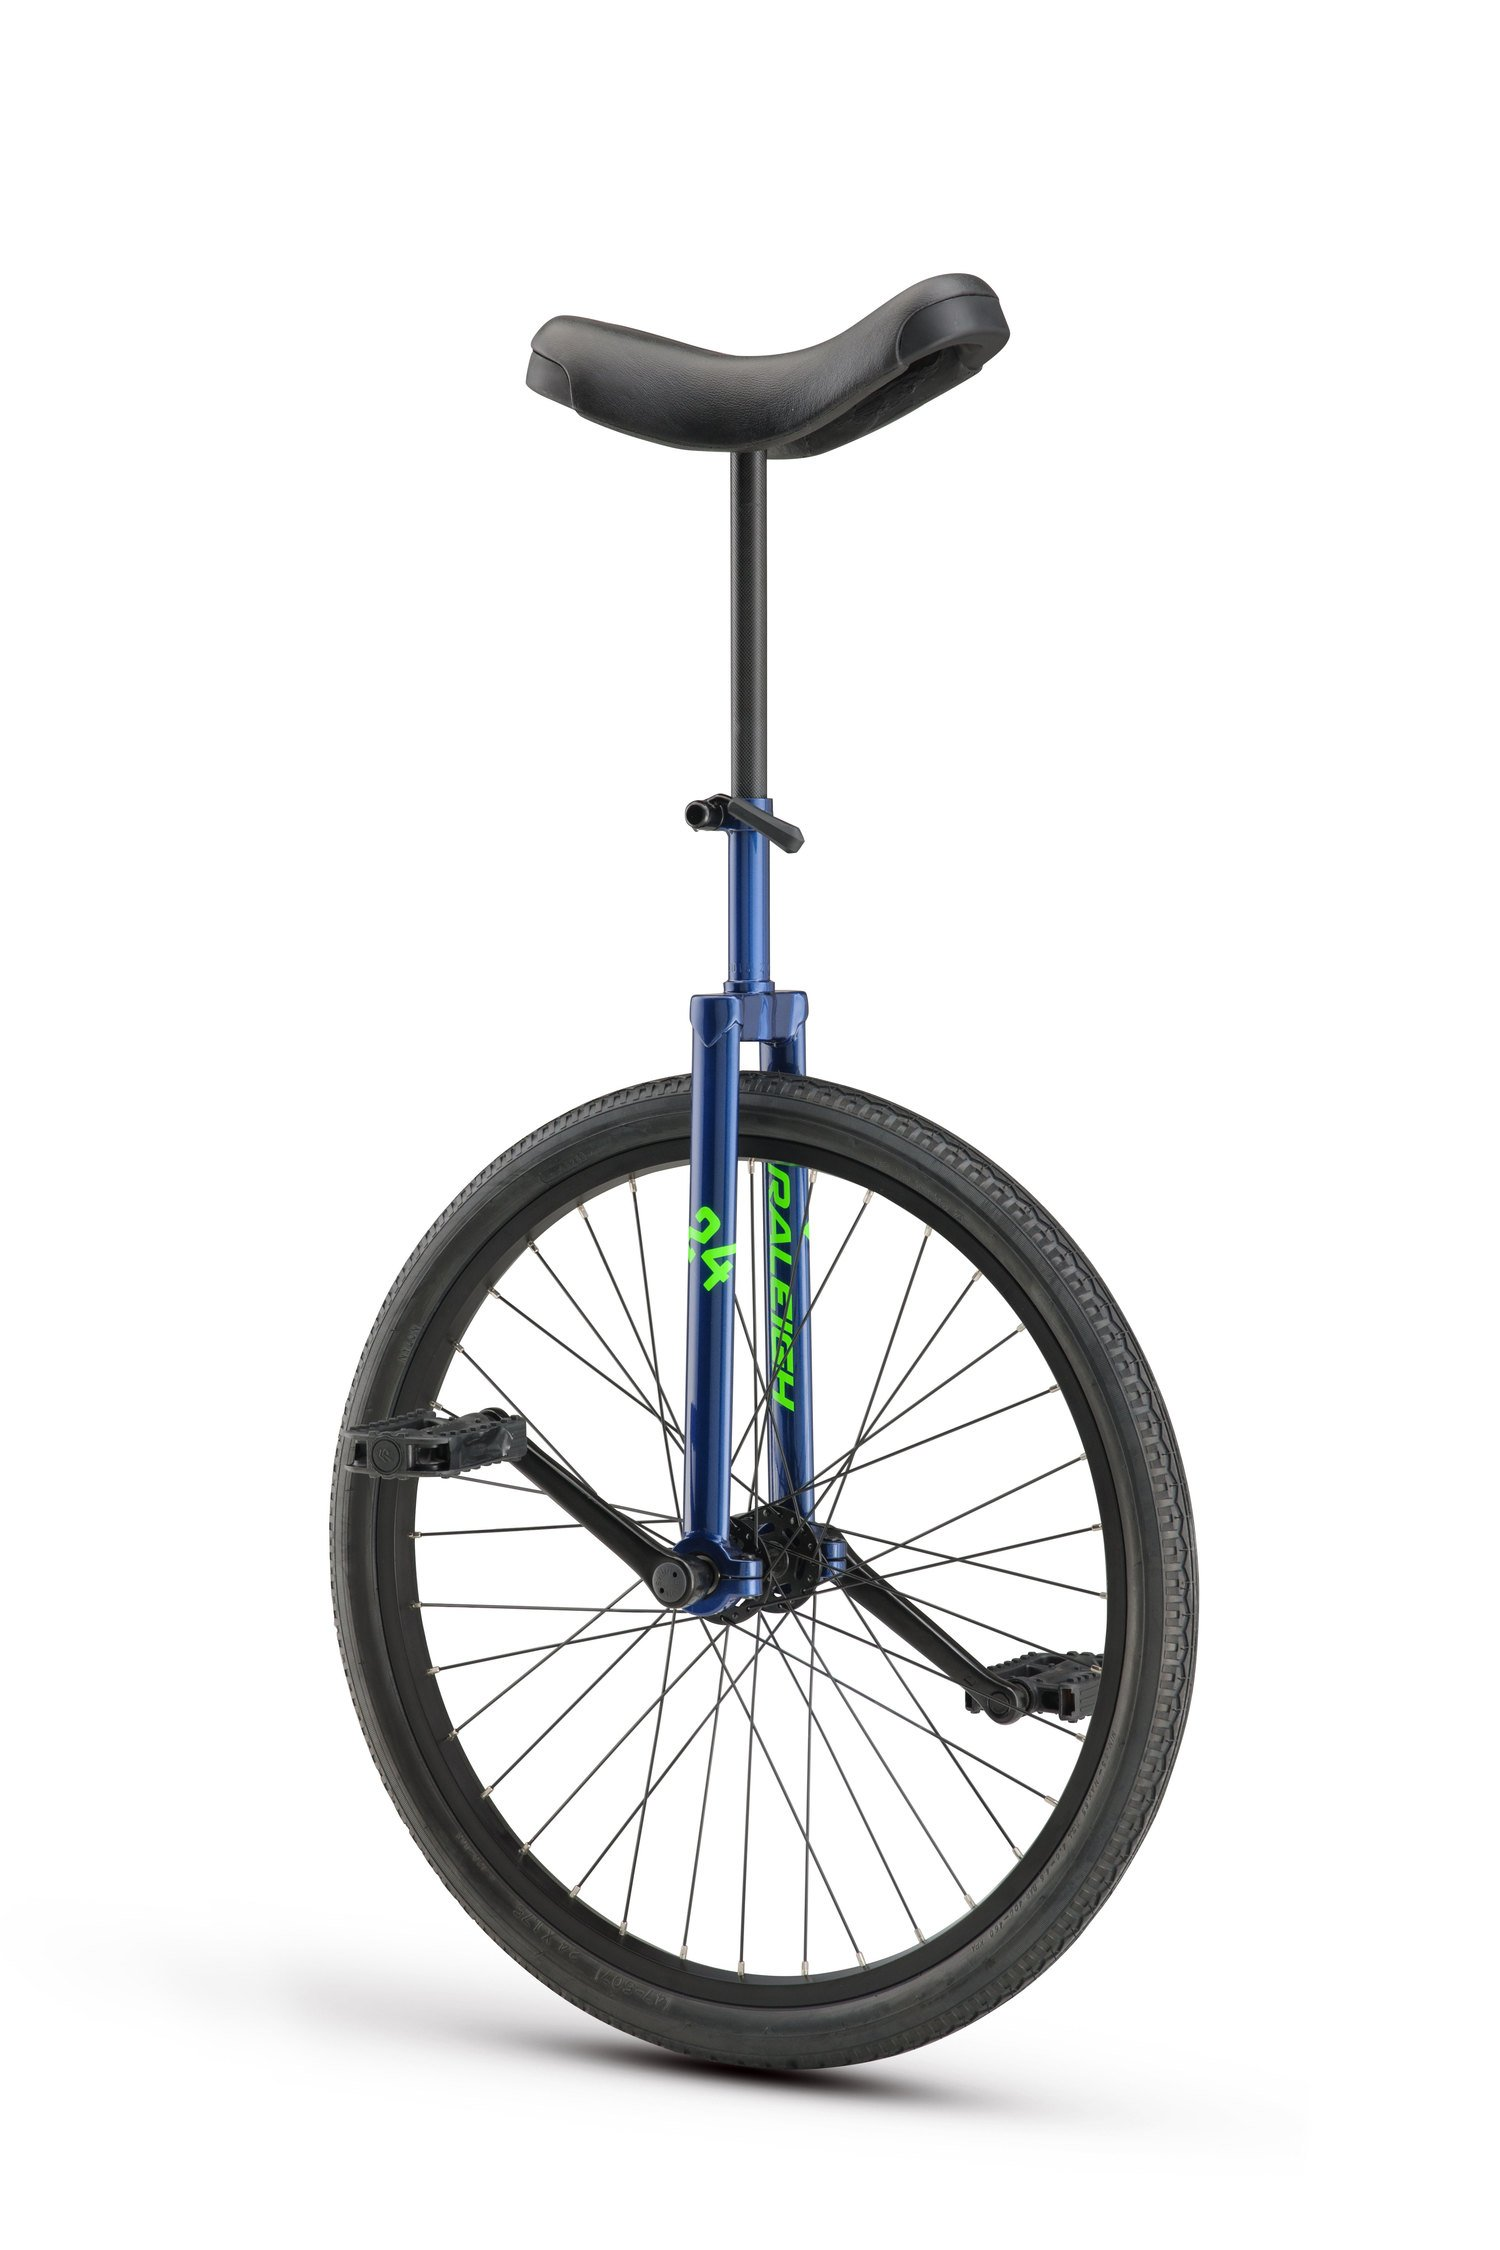 Unistar 24, 24inch Wheel Unicycle, Blue by Diamondback Bicycles